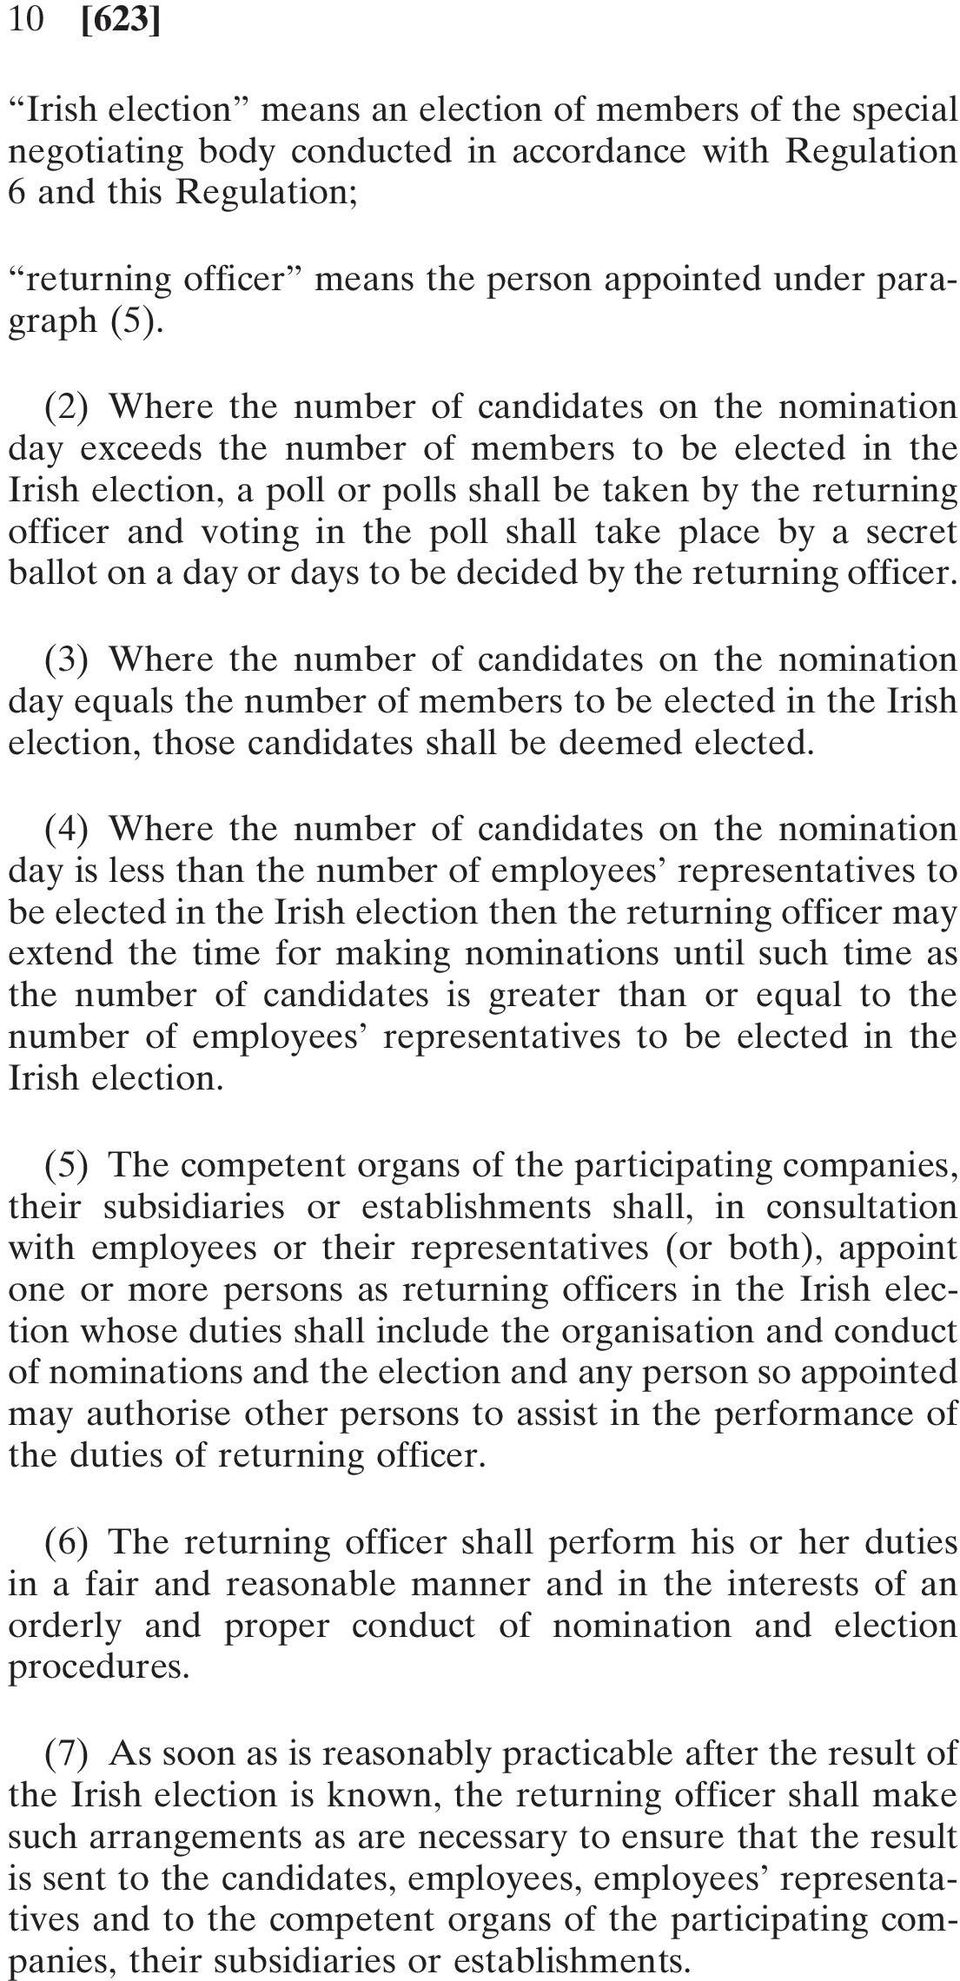 (2) Where the number of candidates on the nomination day exceeds the number of members to be elected in the Irish election, a poll or polls shall be taken by the returning officer and voting in the